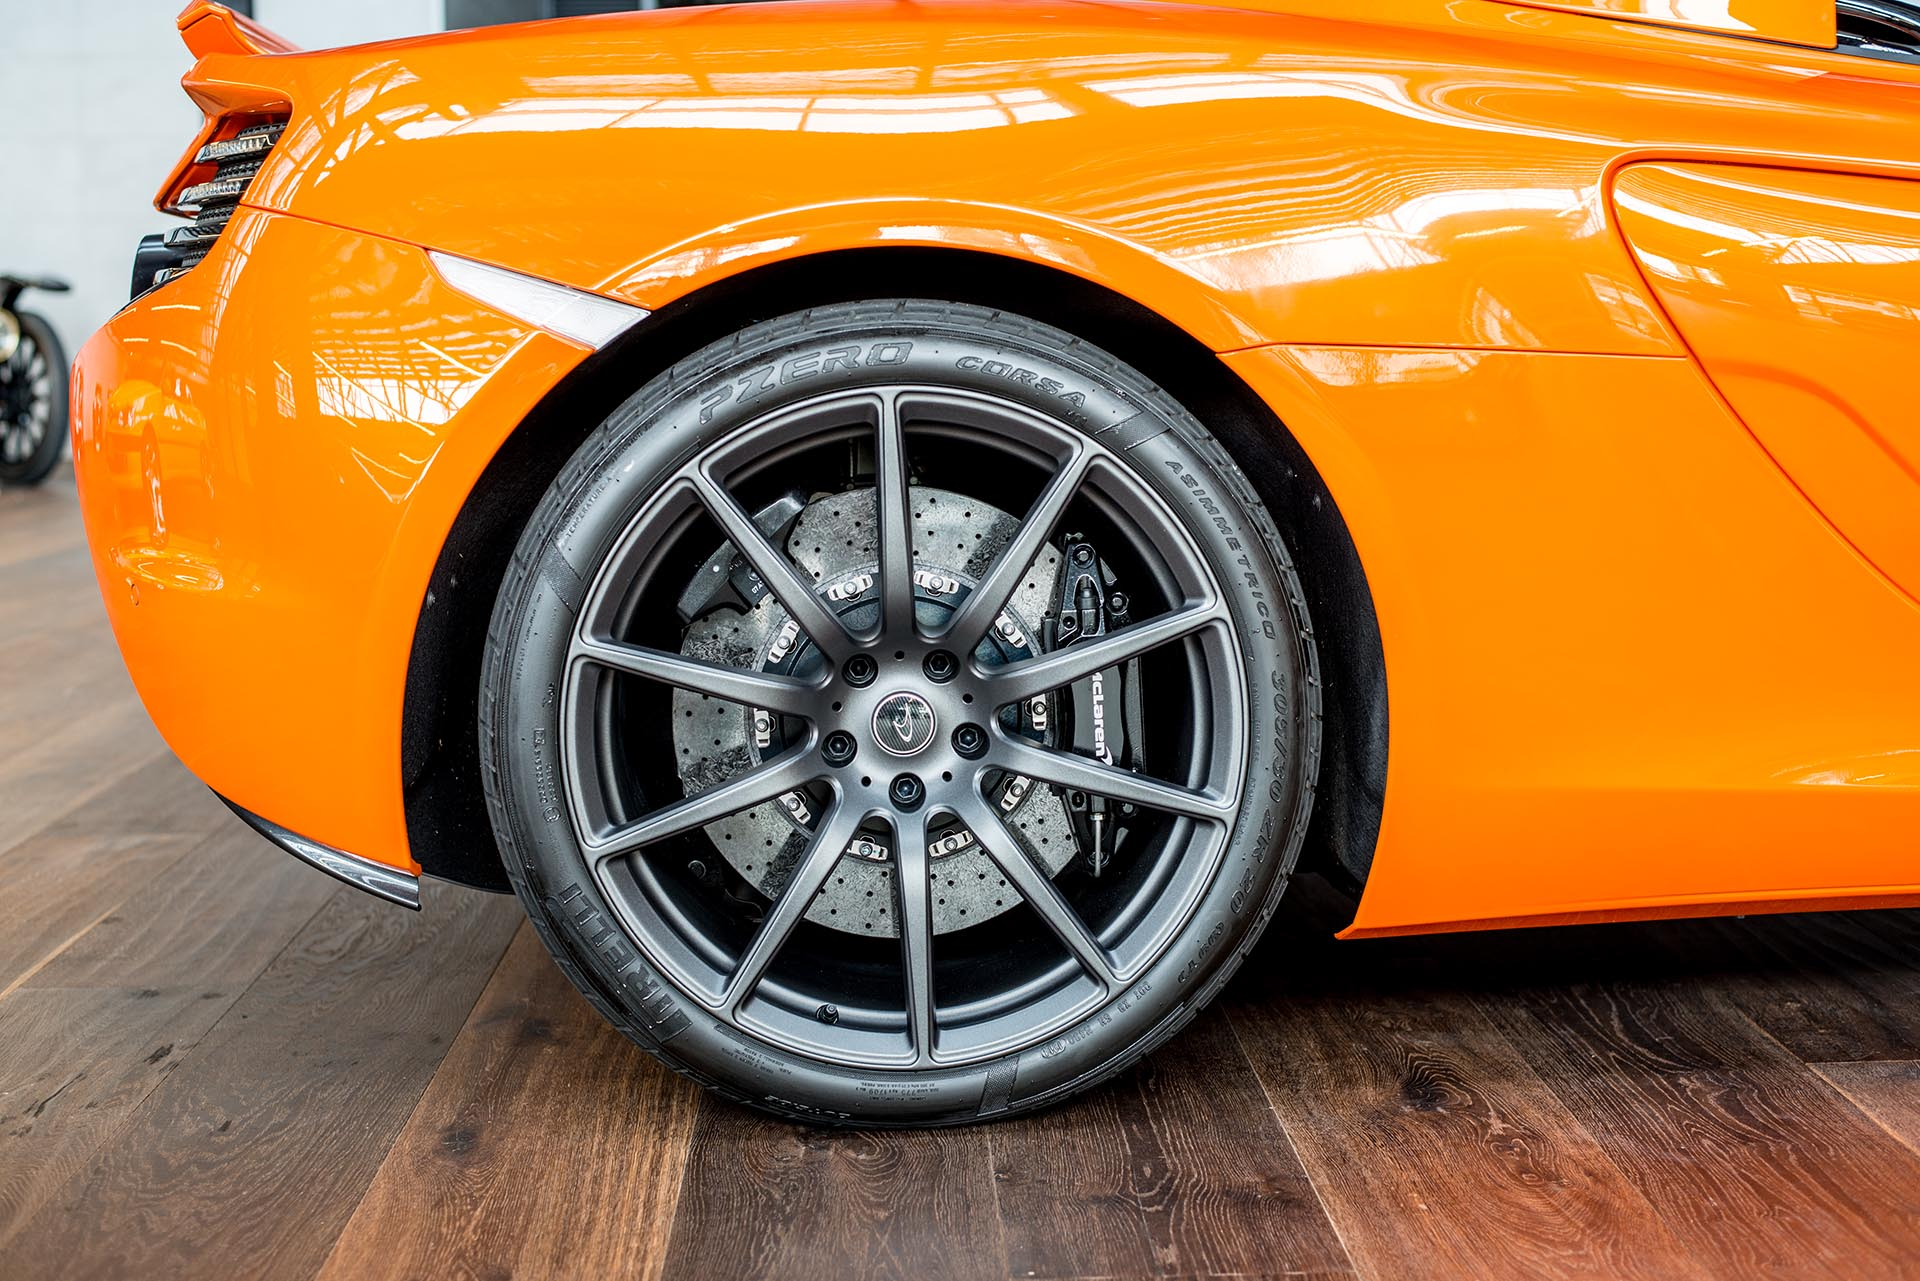 mclaren 650s for sale australia with My15 Mclaren 650s Spider on Mclaren Opens Third Showroom Australia Gold Coast 1813 besides Cool Cars also Craigslist Used Cars For Sale By Owner Tucson Az 80 in addition Photos besides Photos.